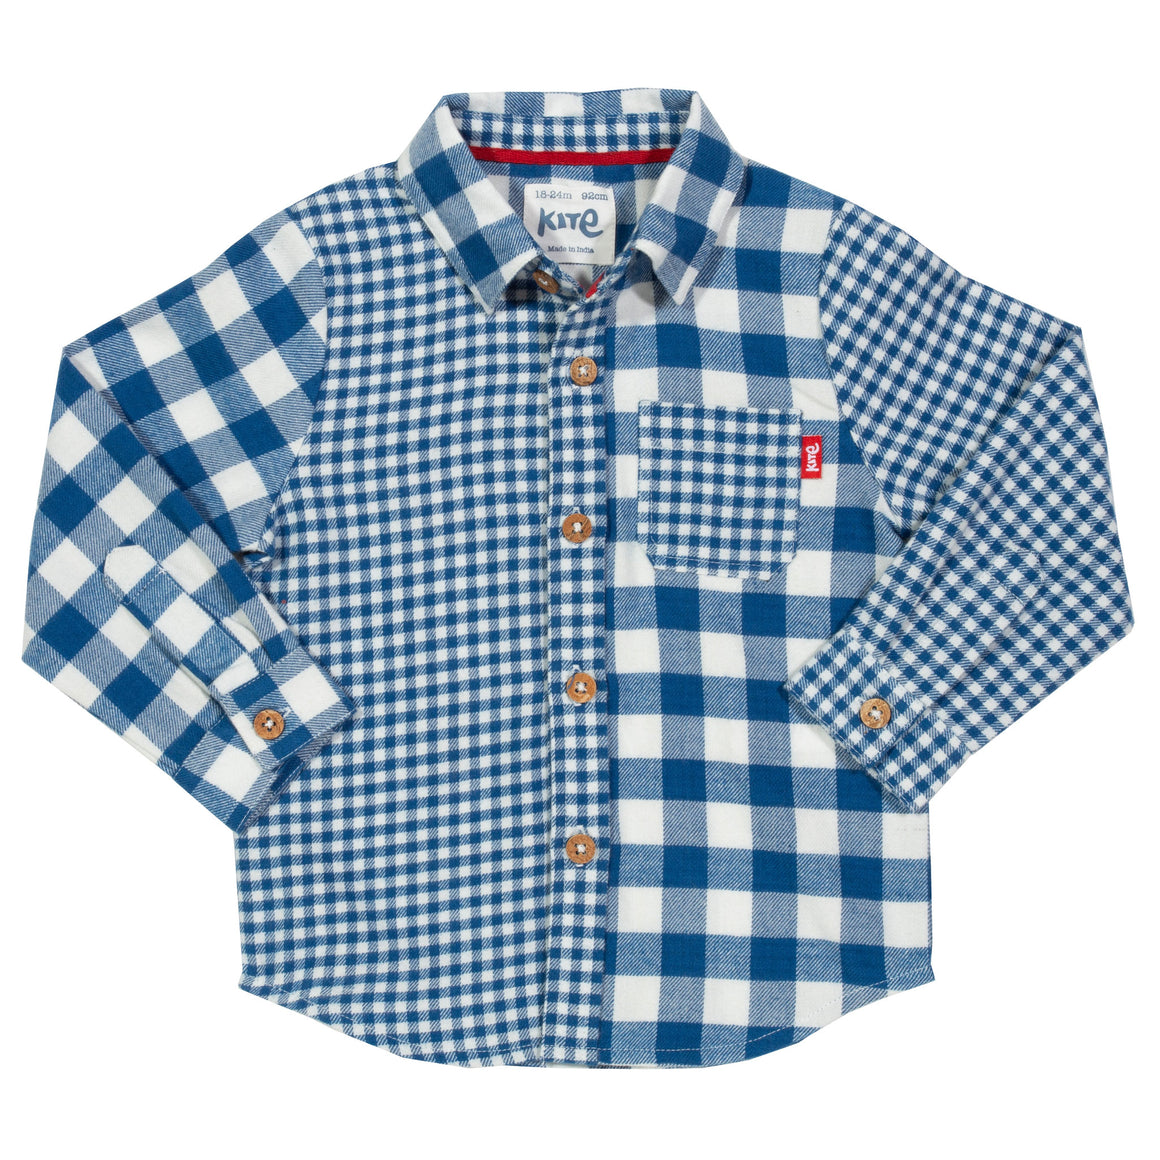 Mix & match shirt